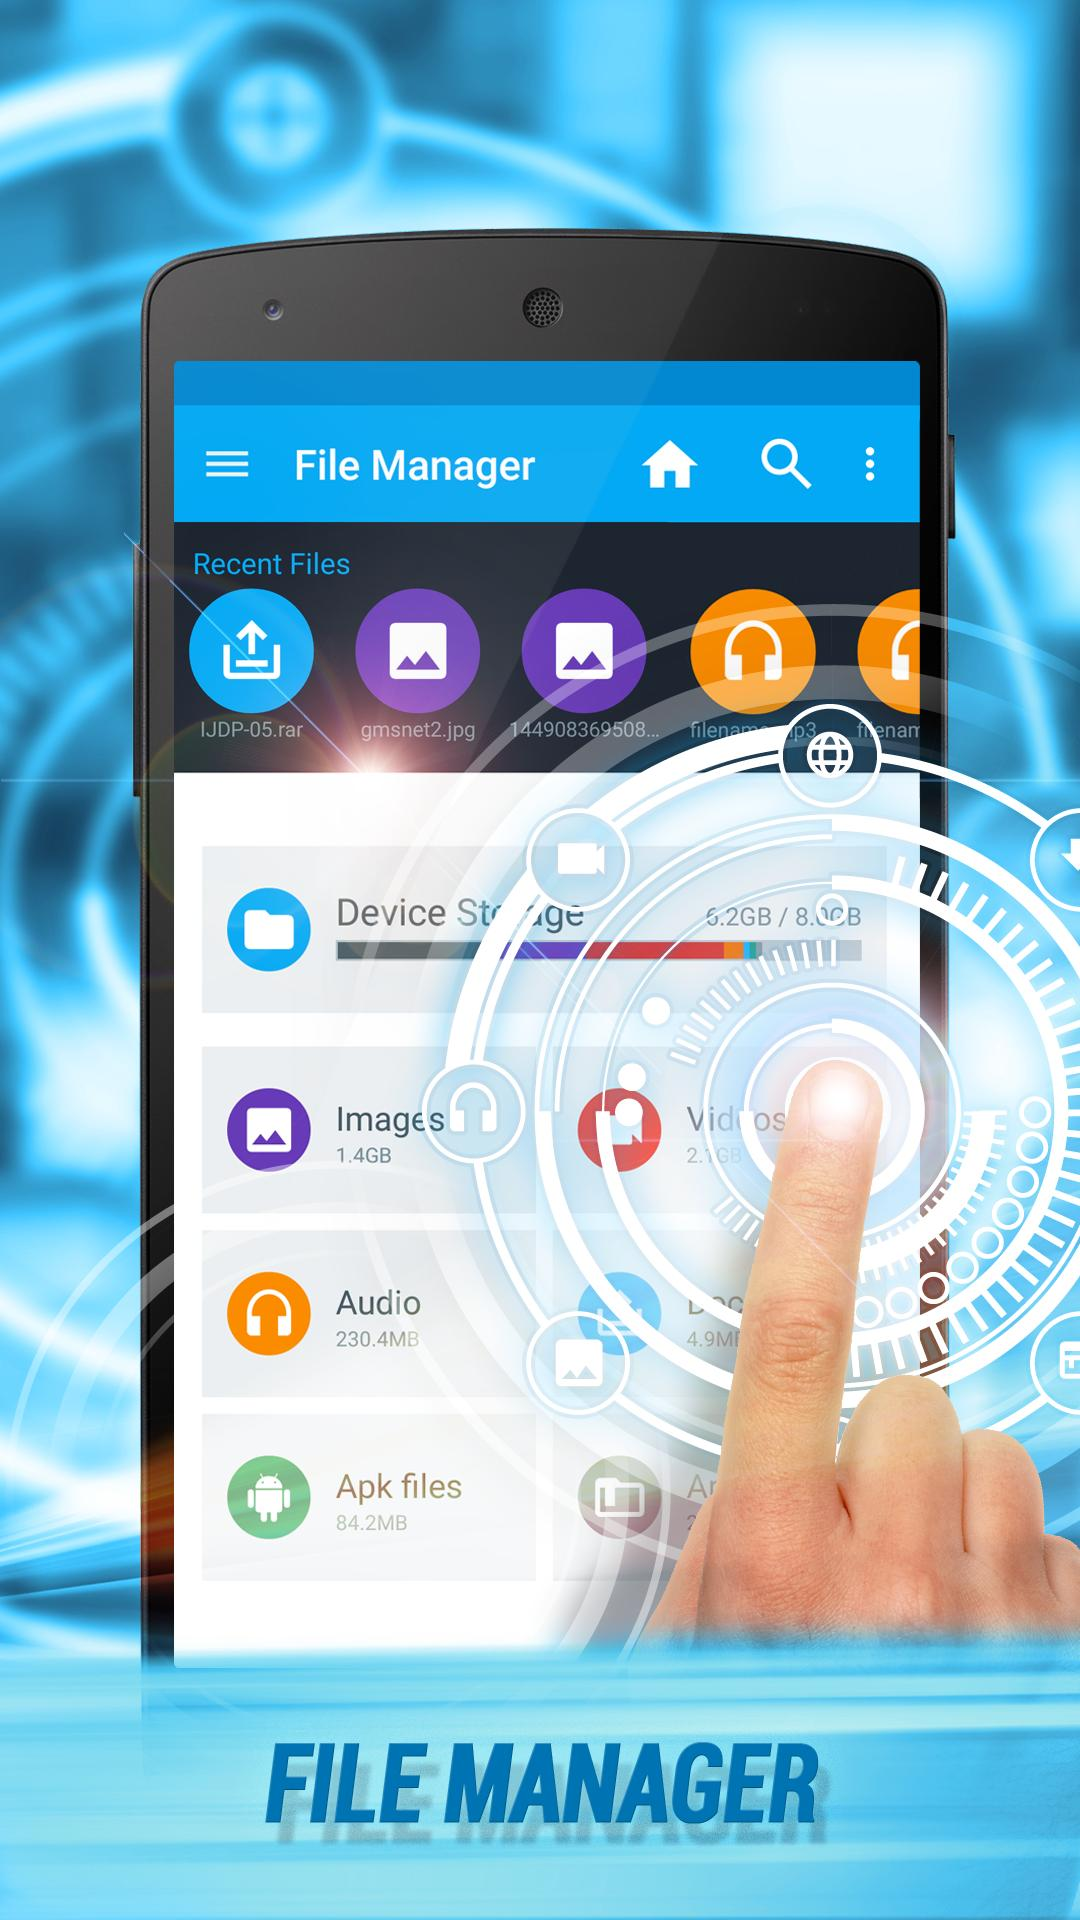 Download Manager for Android - APK Download